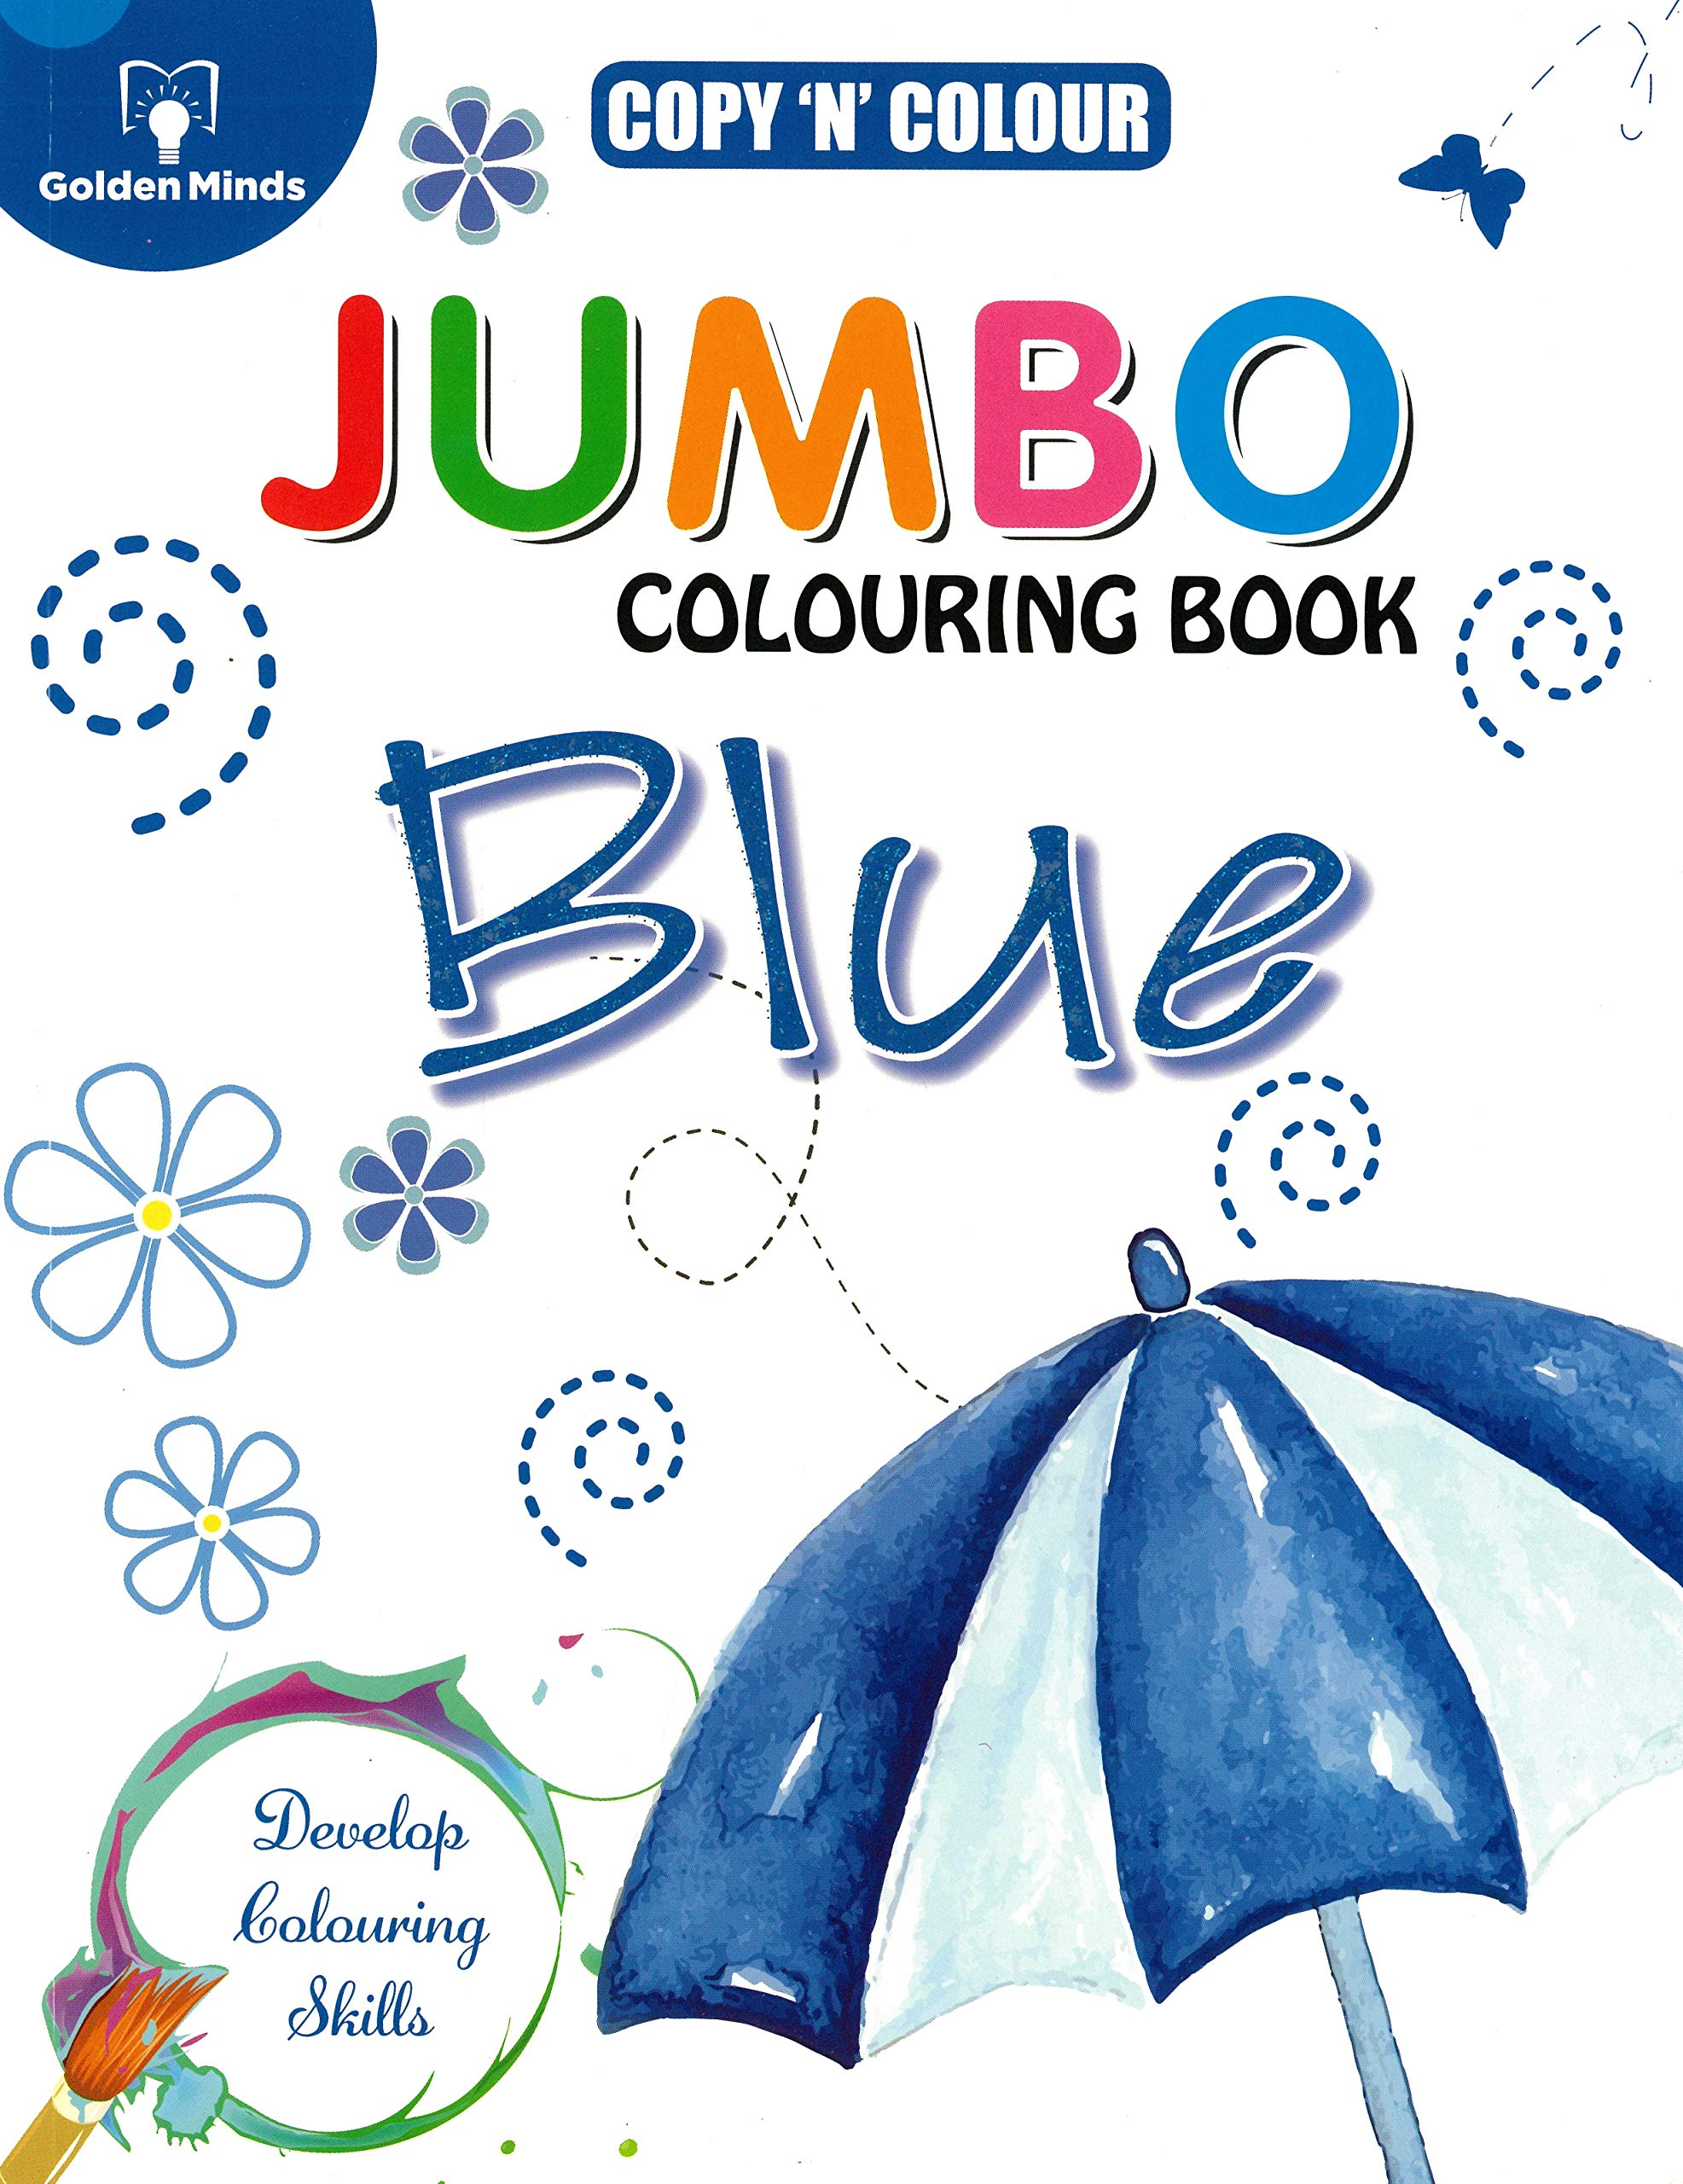 My Jumbo Colouring Book- Blue